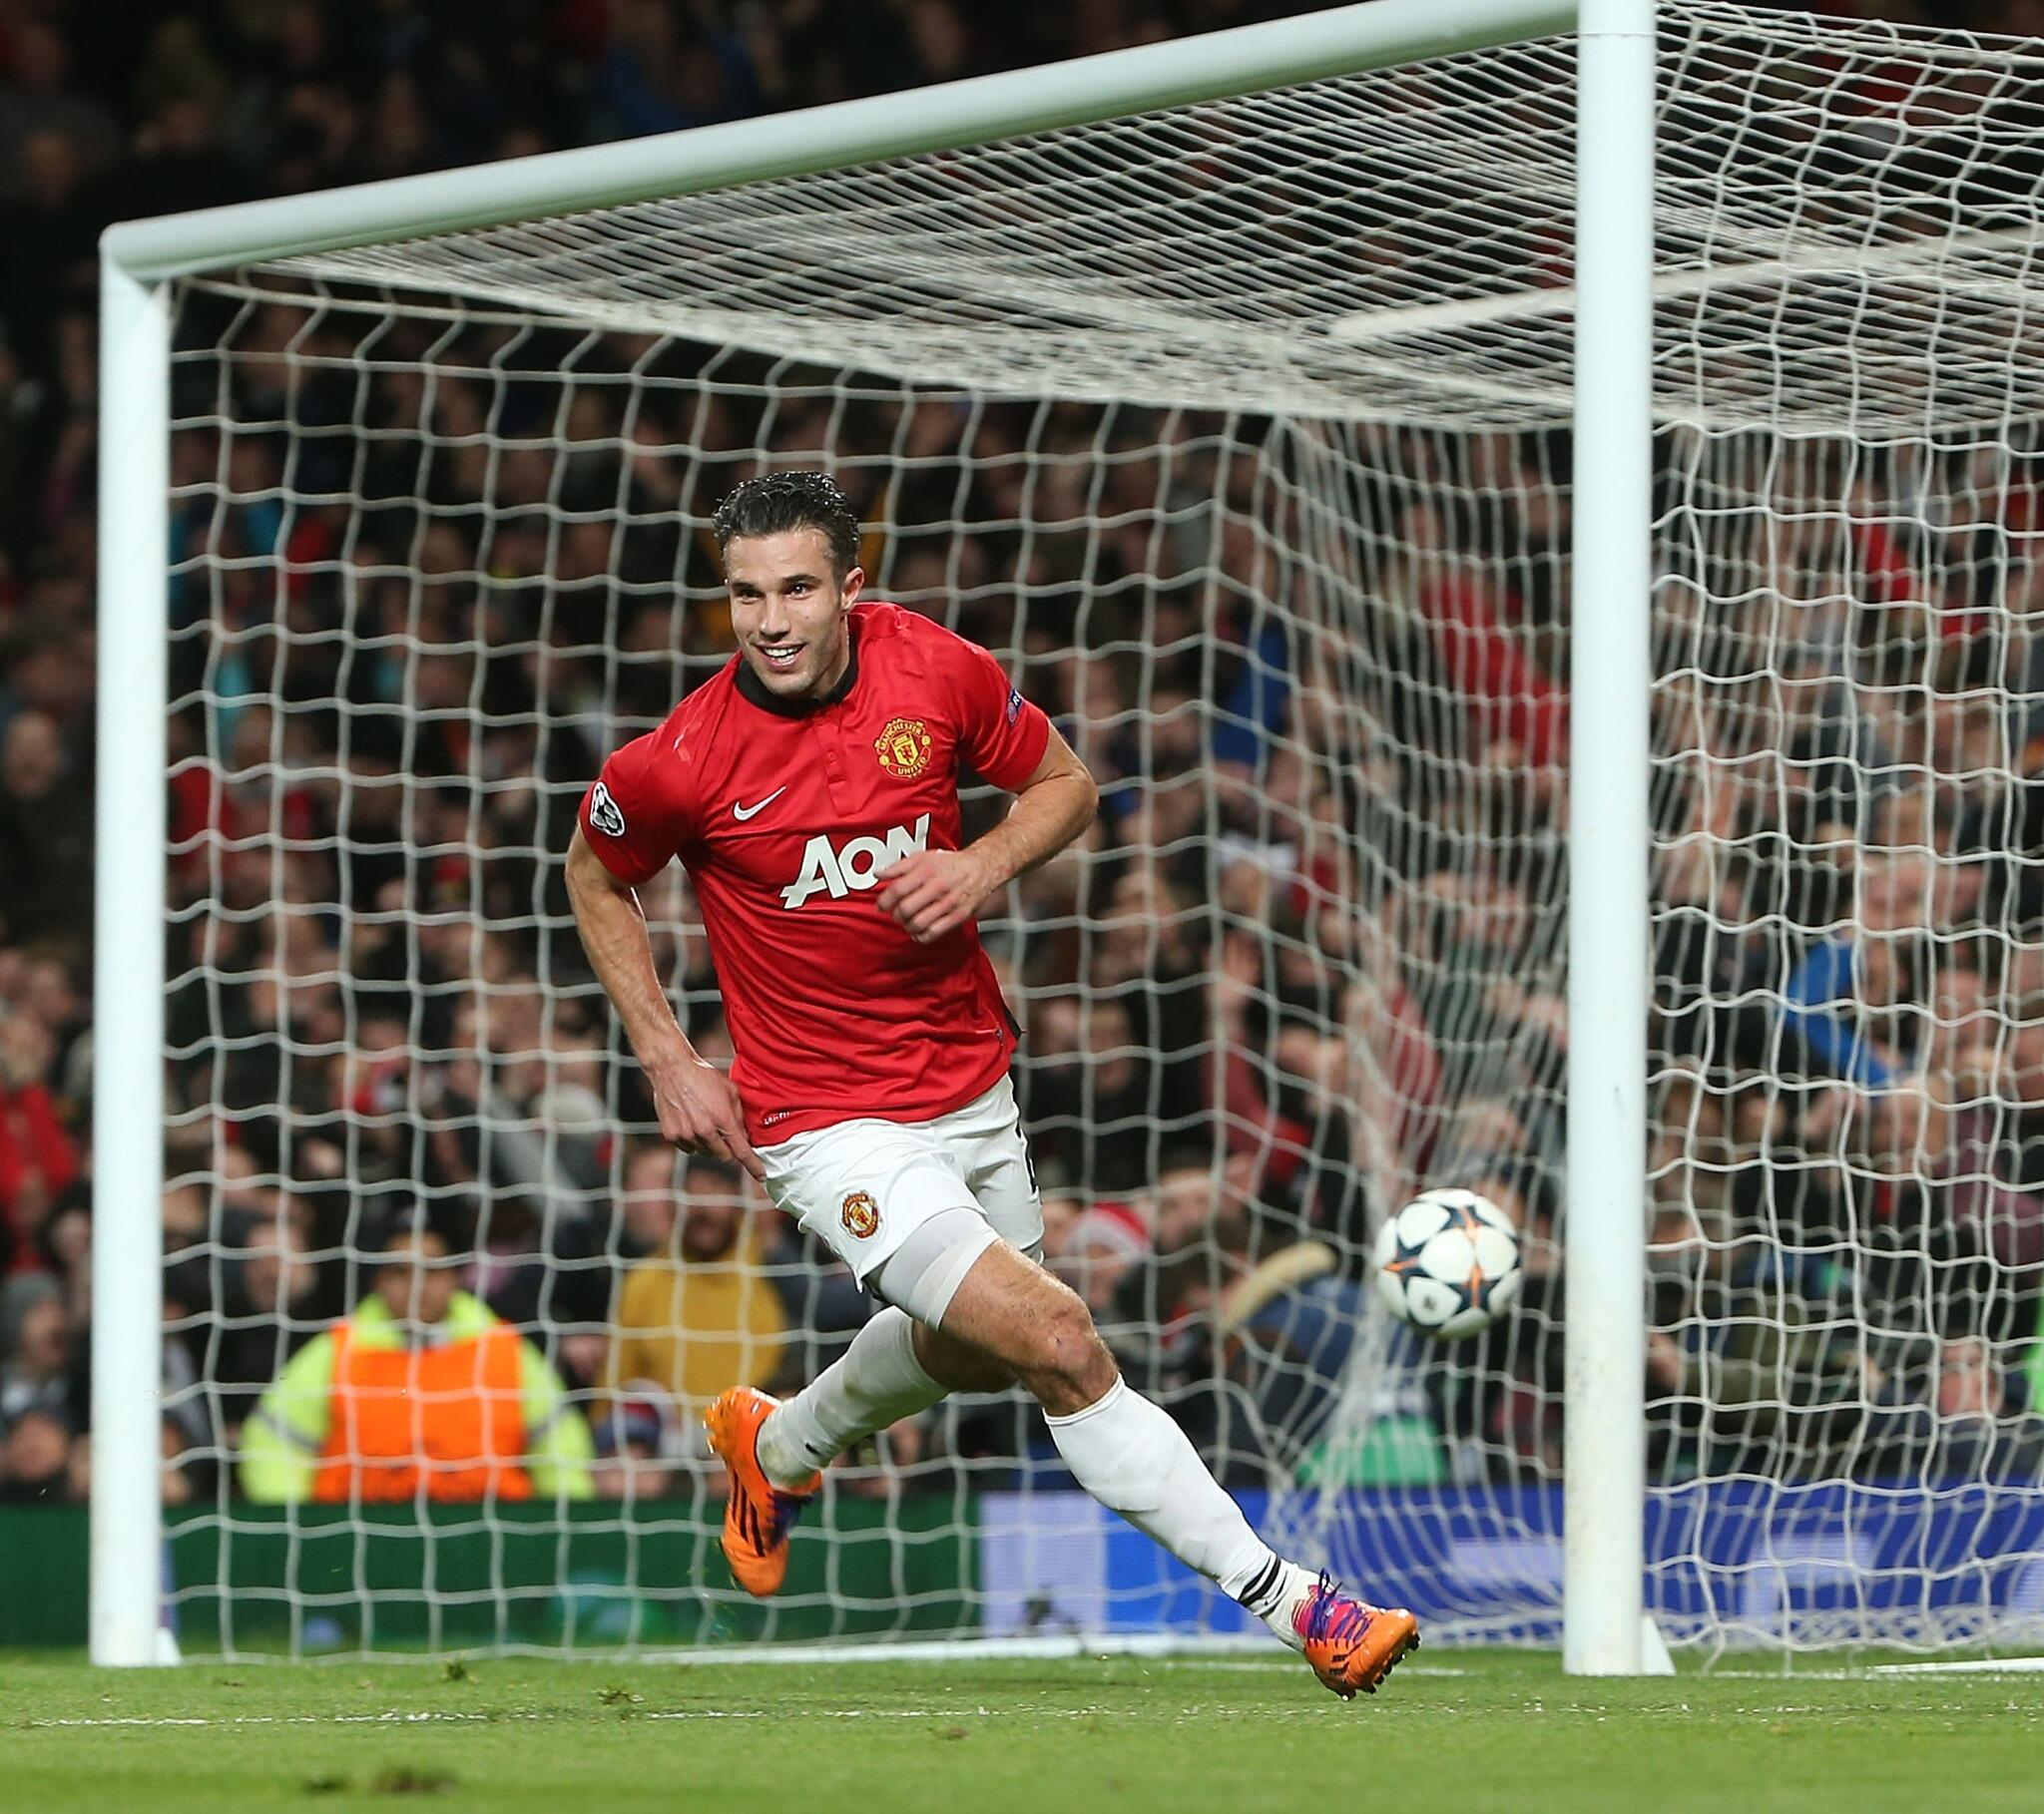 Man of the Match 3/3 - Retweet this if @Persie_Official gets your vote for #mufc against Olympiacos. http://t.co/flAniy9TeZ